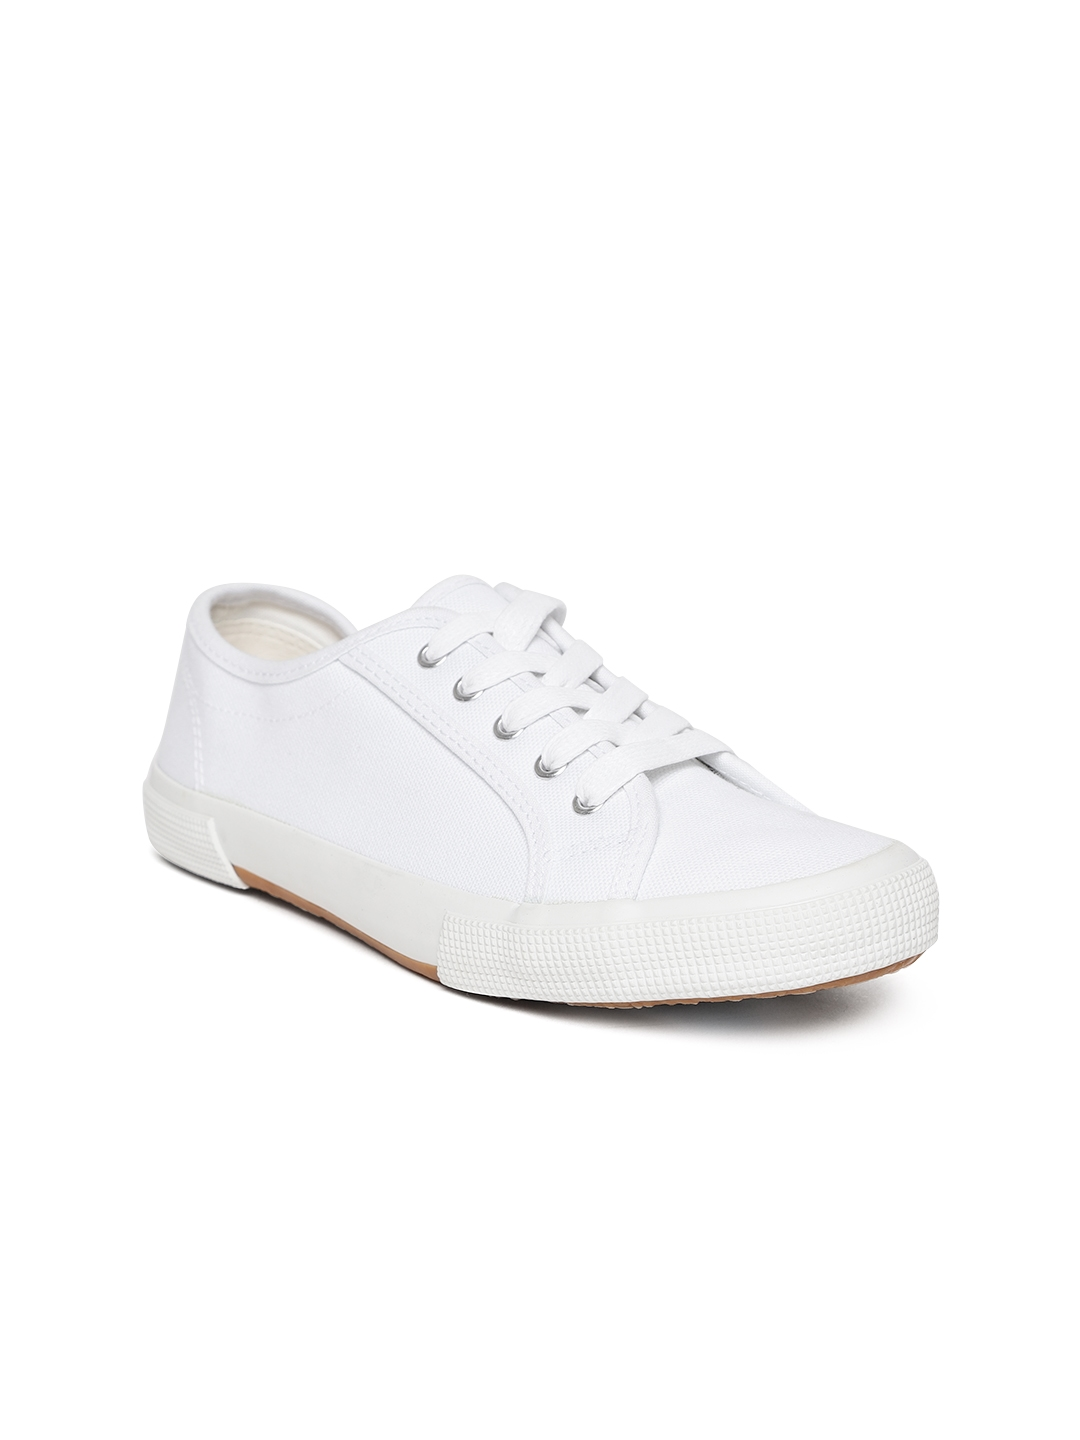 White Sneakers - Casual Shoes for Women